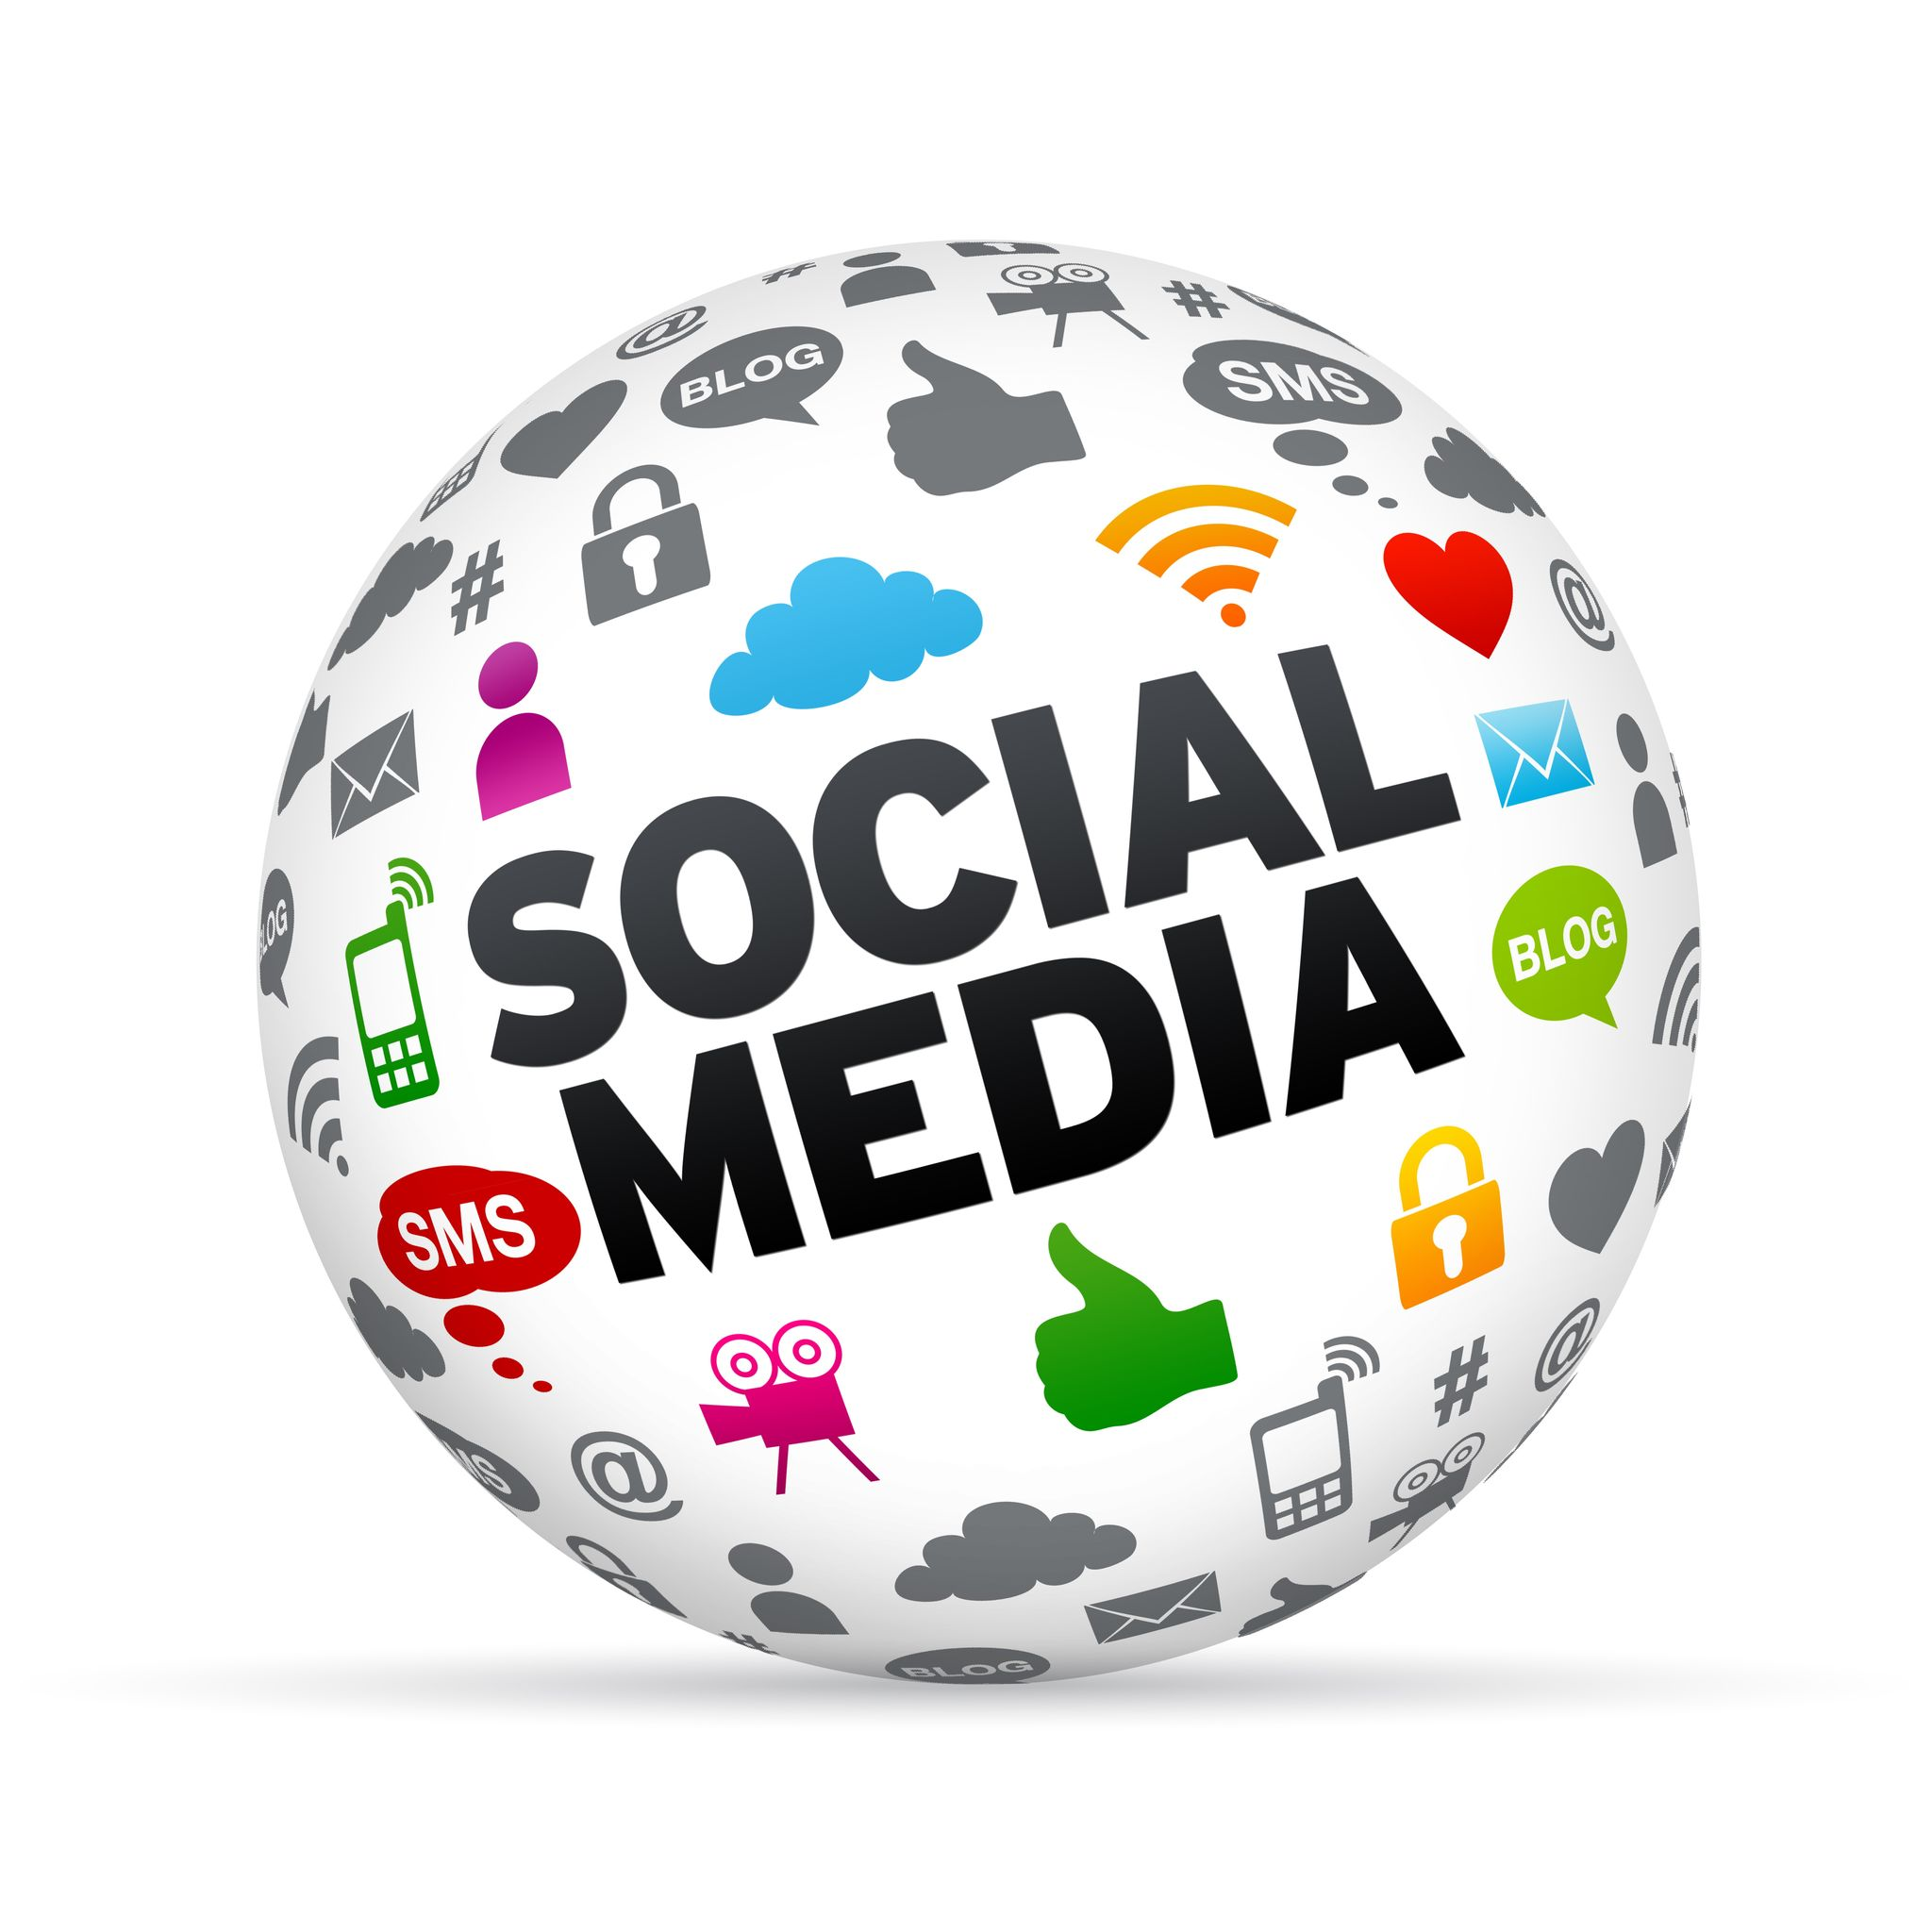 True North Social is the best social media marketing agency to implement your strategies